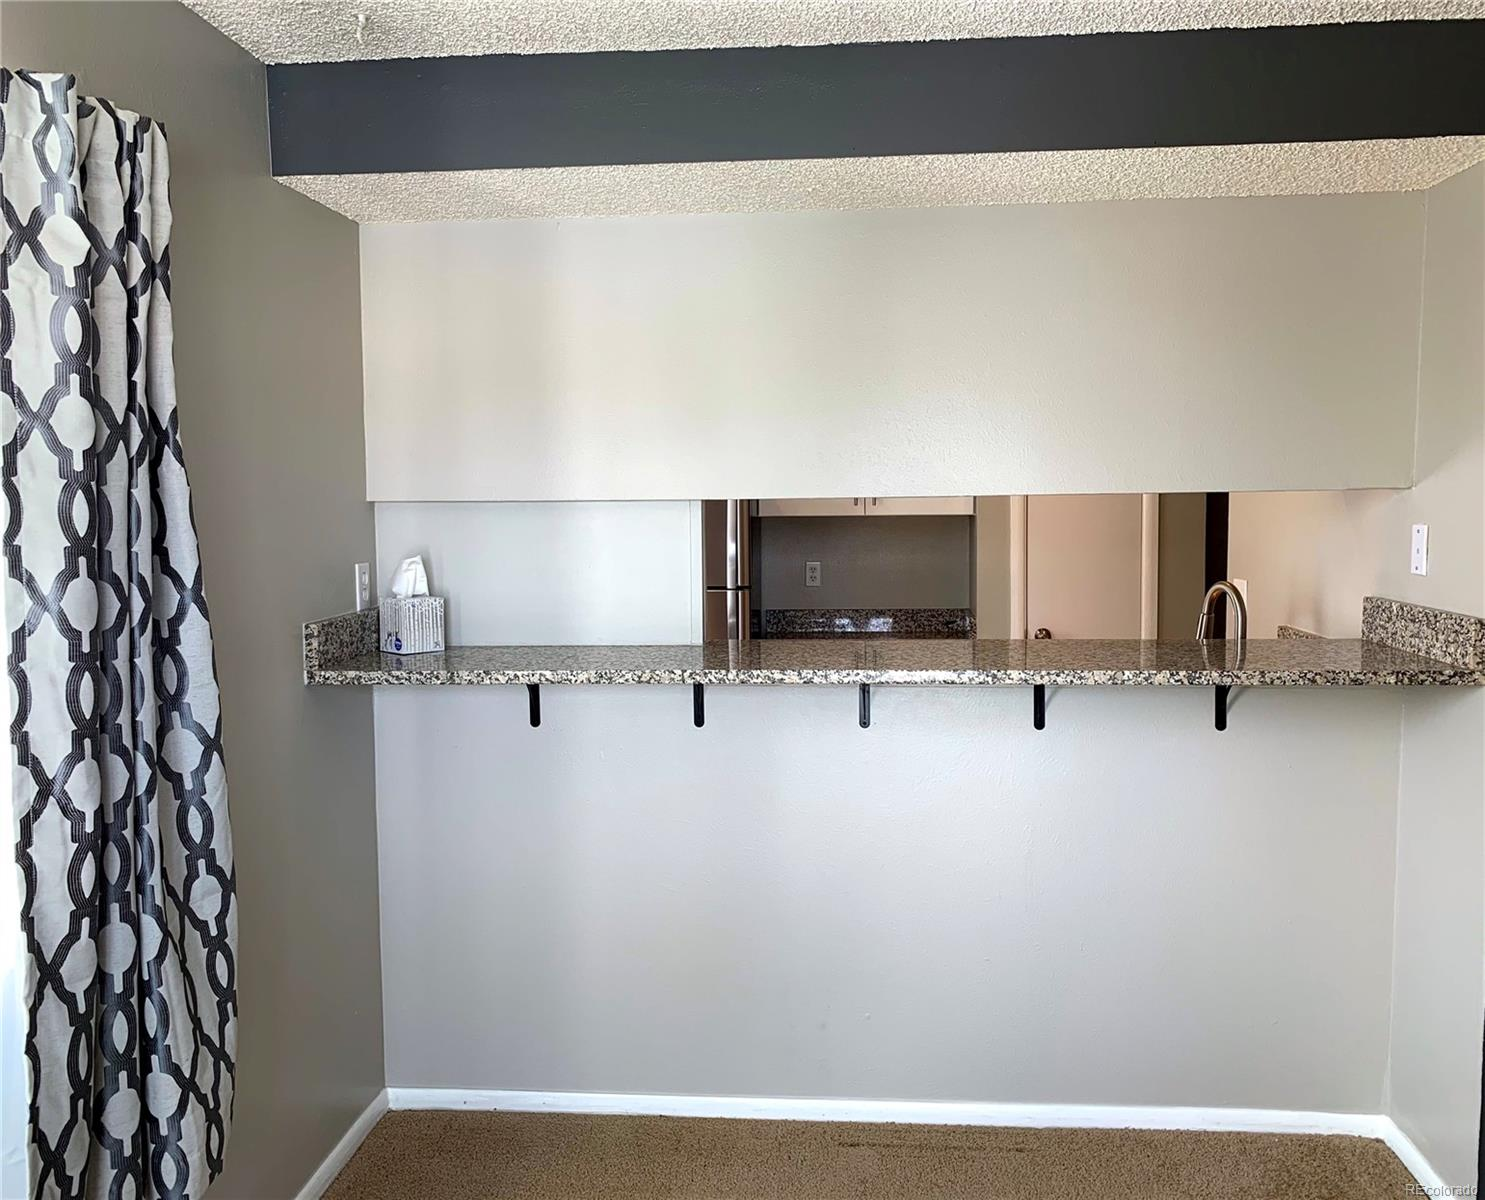 Dining Room with Room for Bar Stools at Counter